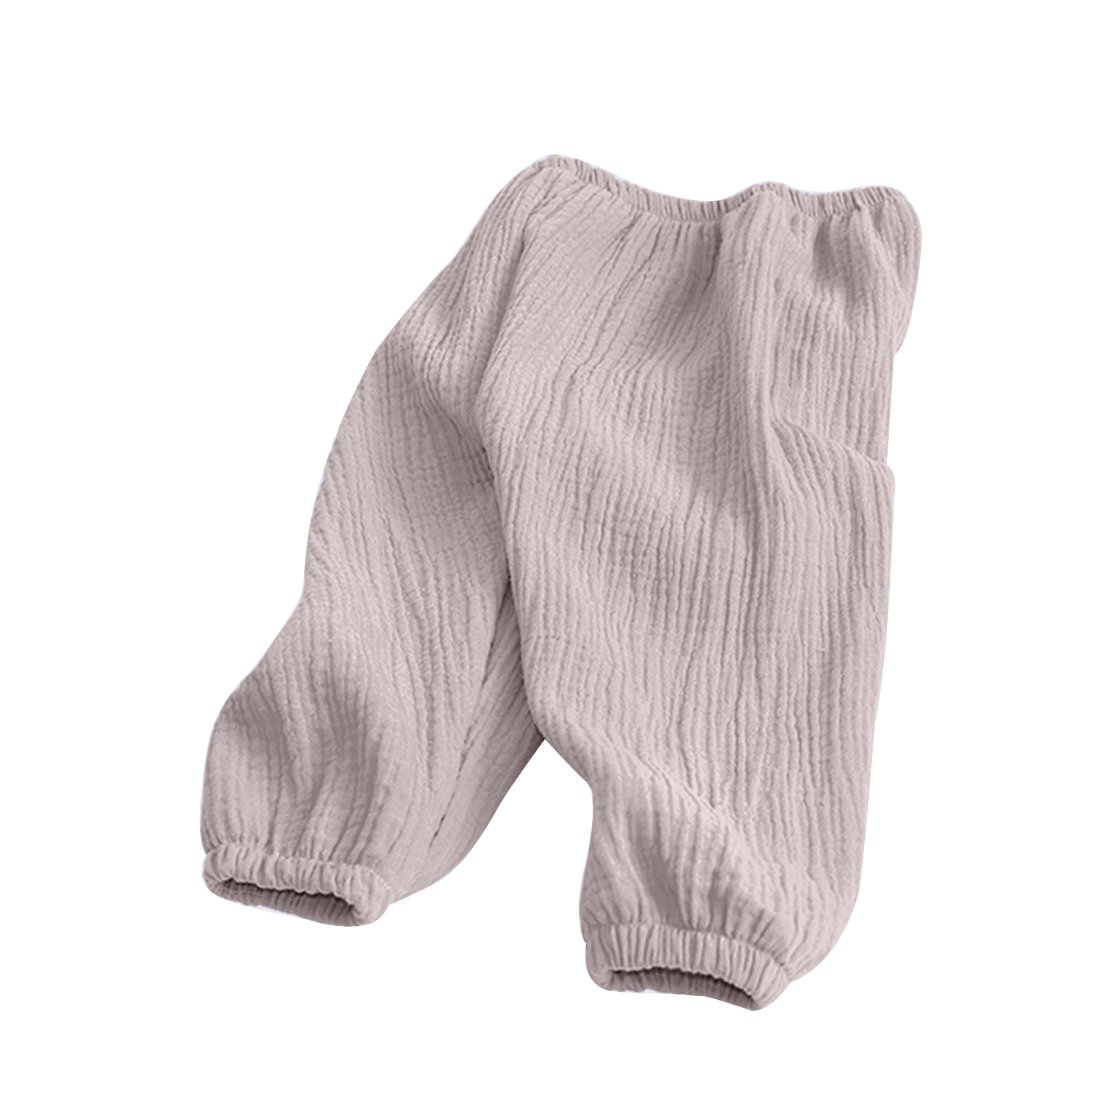 PAUBOLI Baby Long Bloomers Soft Cotton Harem Pants for Boys Girls 12M-6T